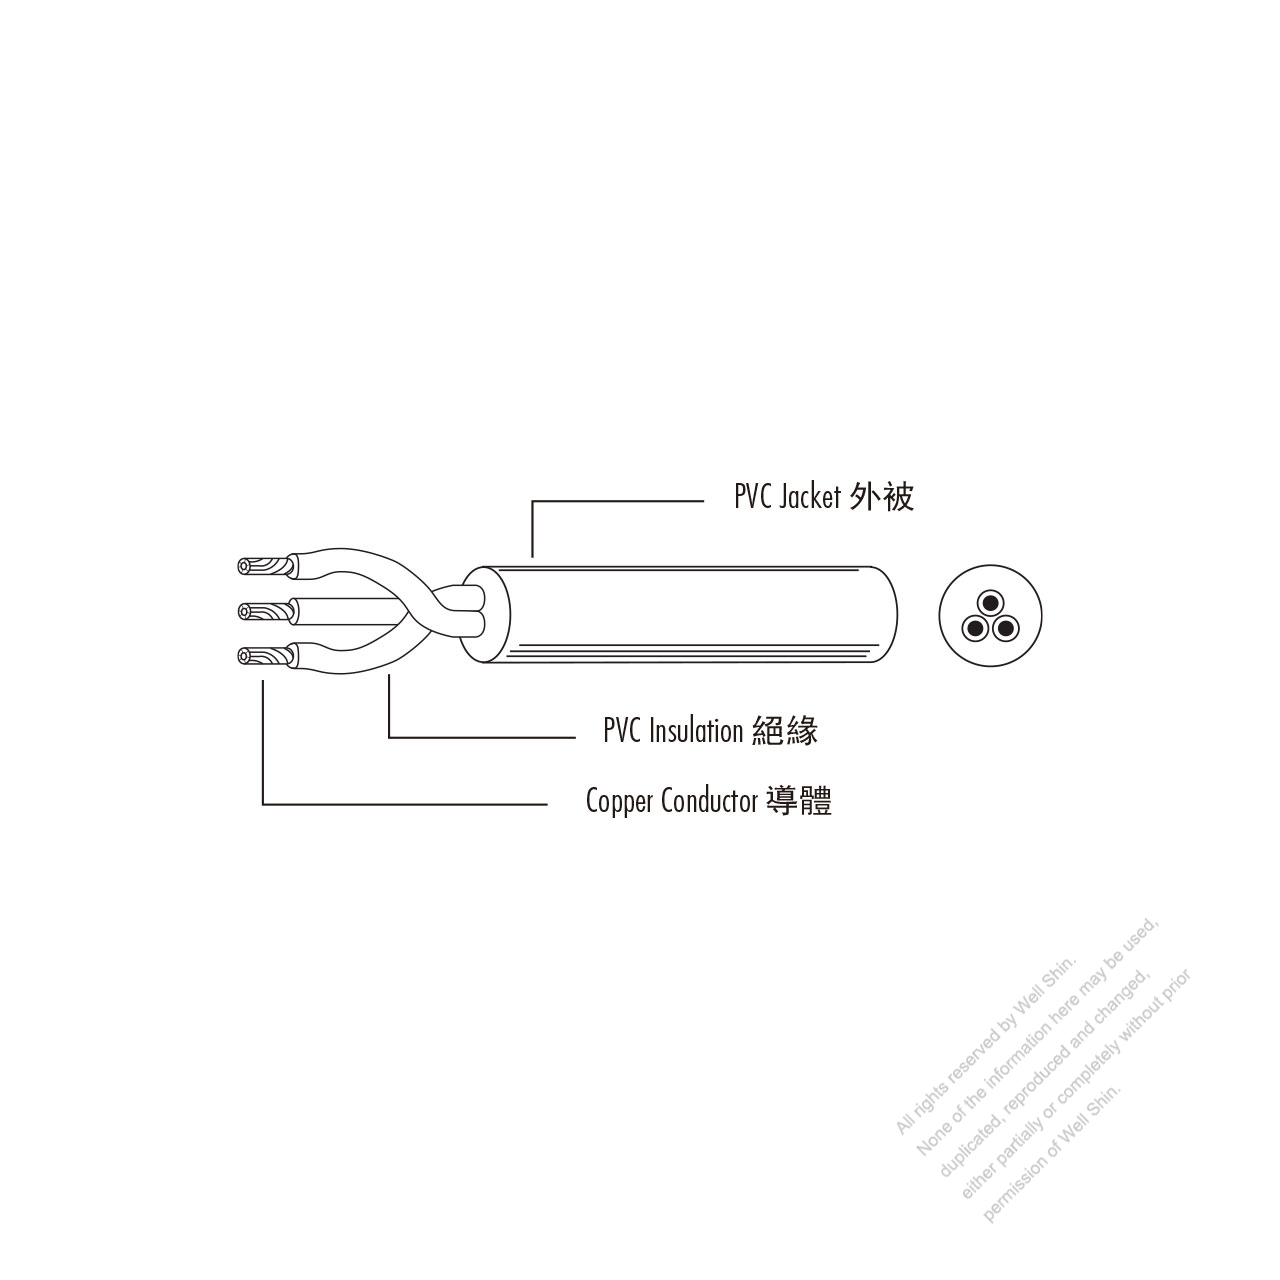 Iec wiring diagram iec plug internet connection wiring diagram iec plug wiring diagram free download wiring diagrams b4fdbc56b075b9d2177a1f iec plug wiring diagramhtml cheapraybanclubmaster Image collections